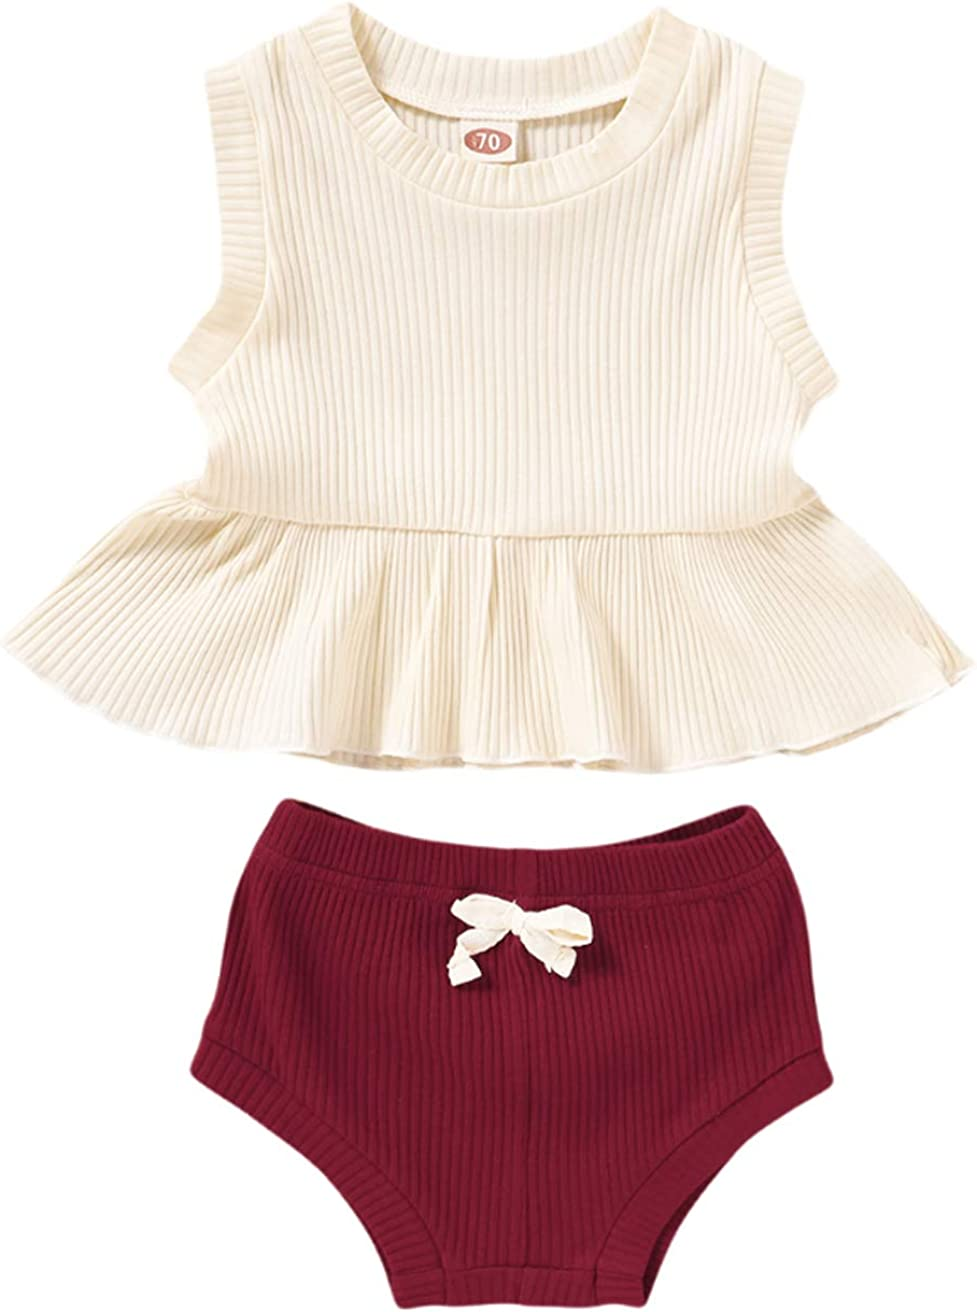 Max 64% OFF Newborn Baby Girl Clothes Sleeveless Cotton Ribbed Solid All items free shipping Knitted